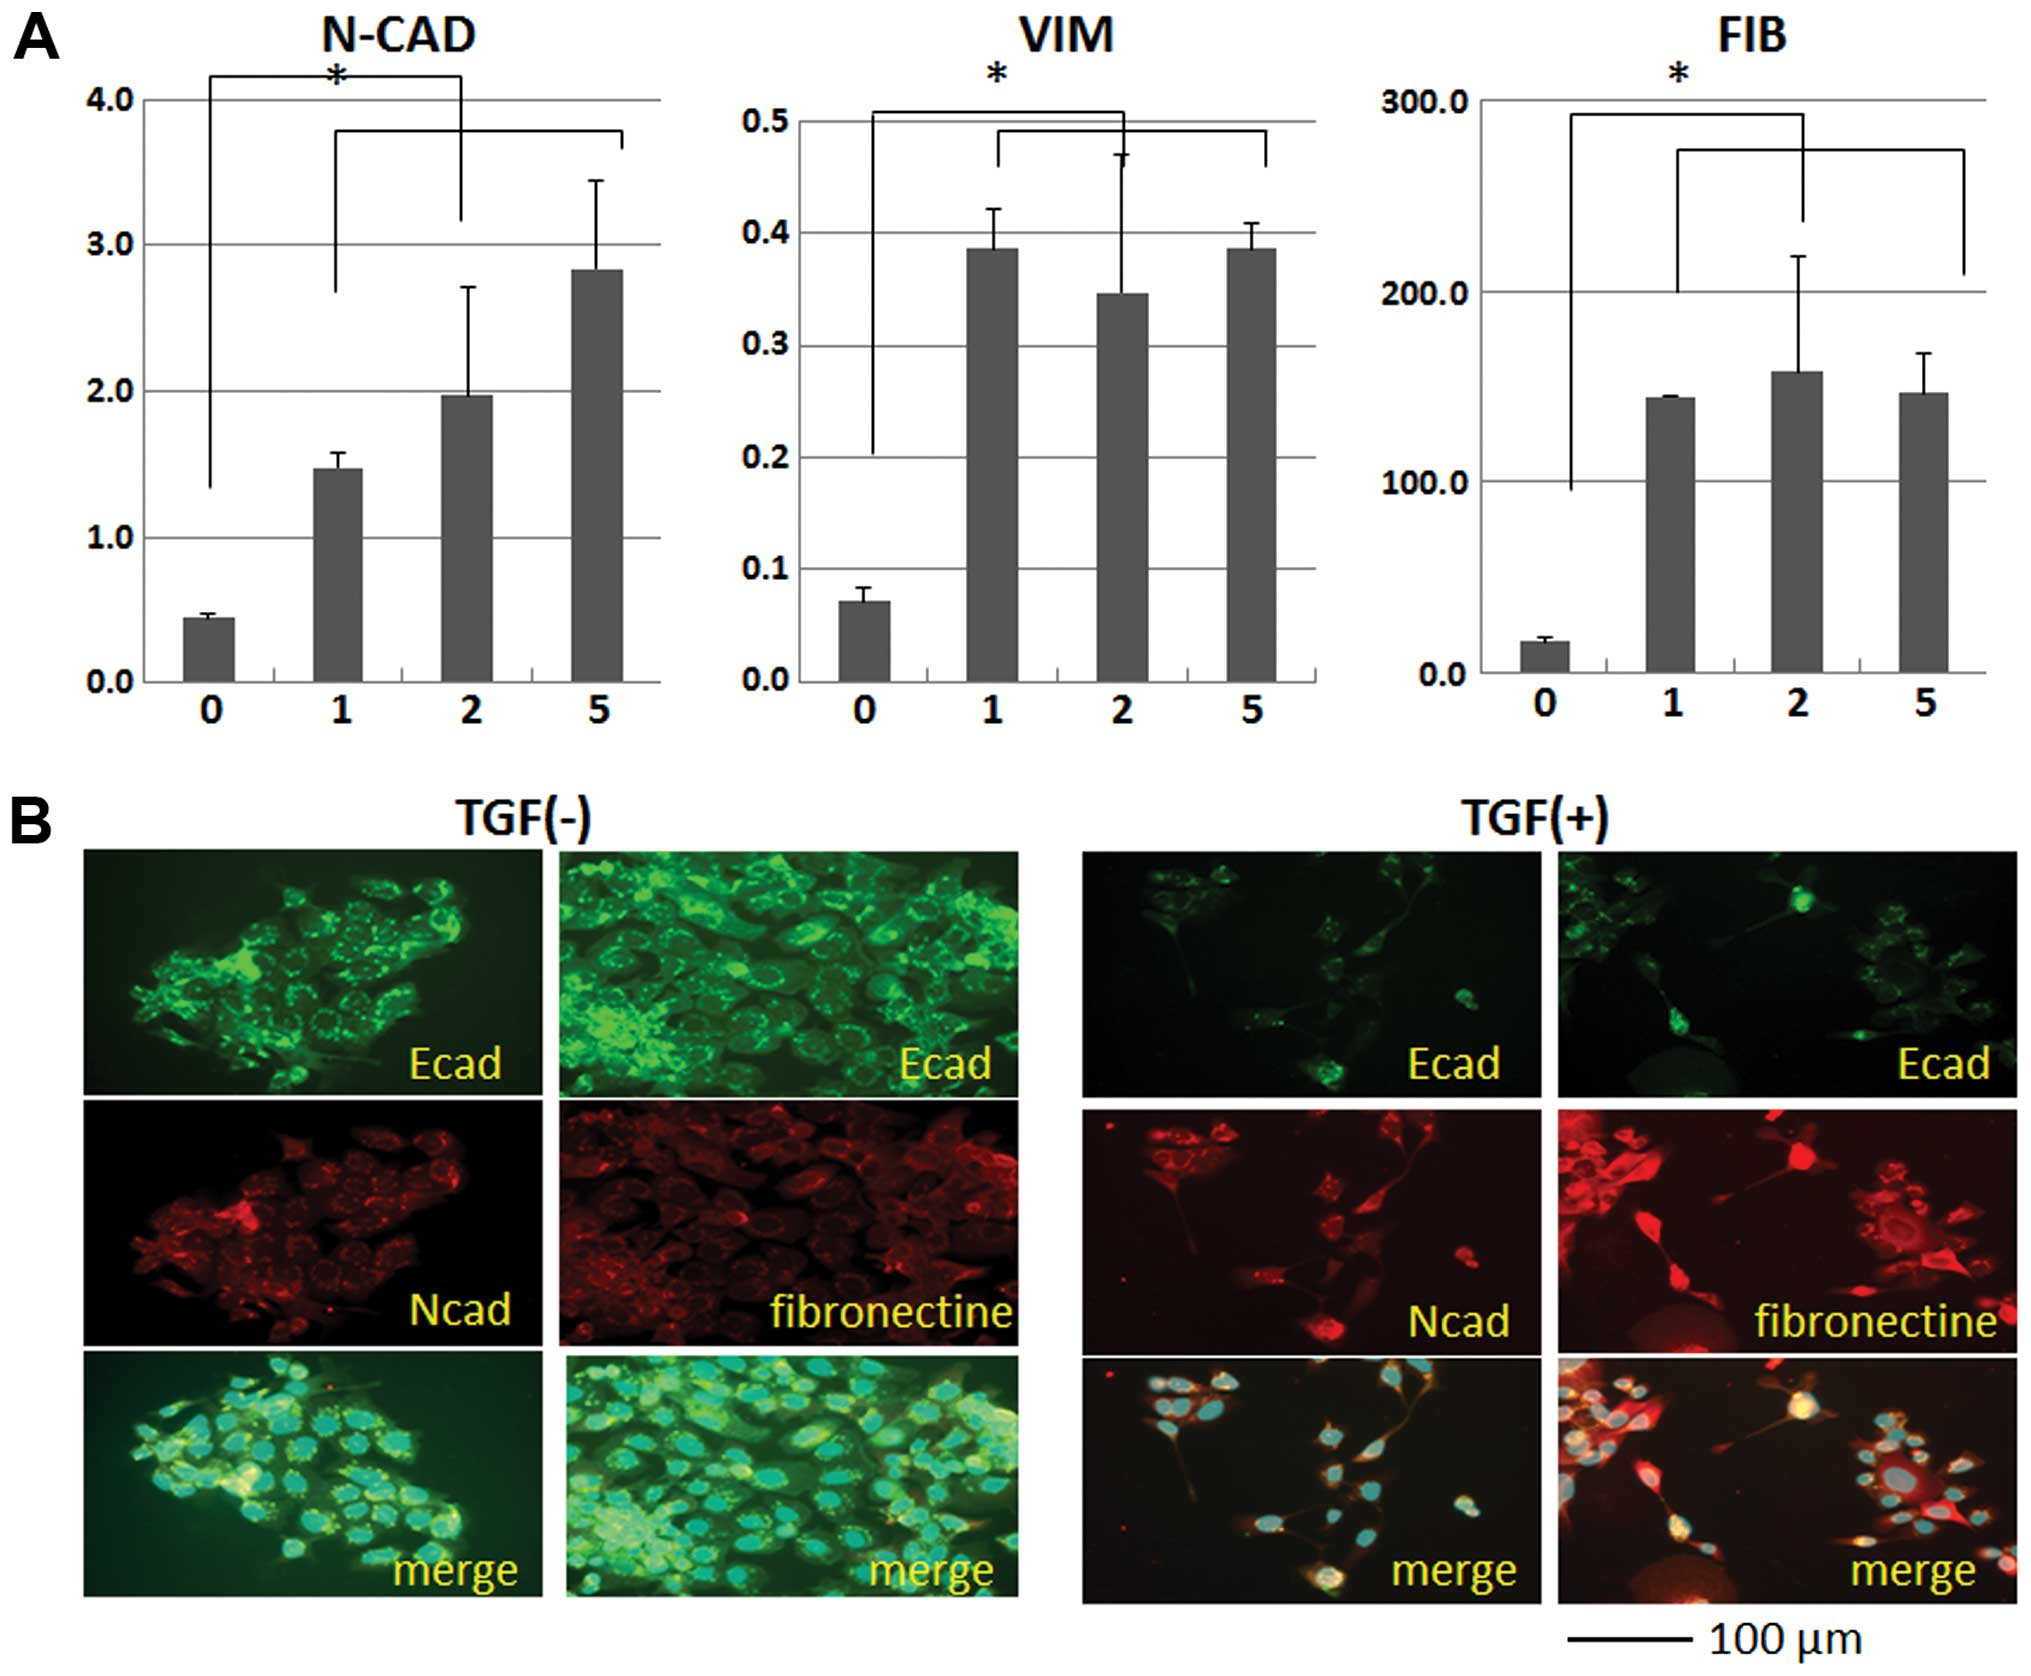 Human Colorectal Cd24 Cancer Stem Cells Are Susceptible To Epithelial Mesenchymal Transition